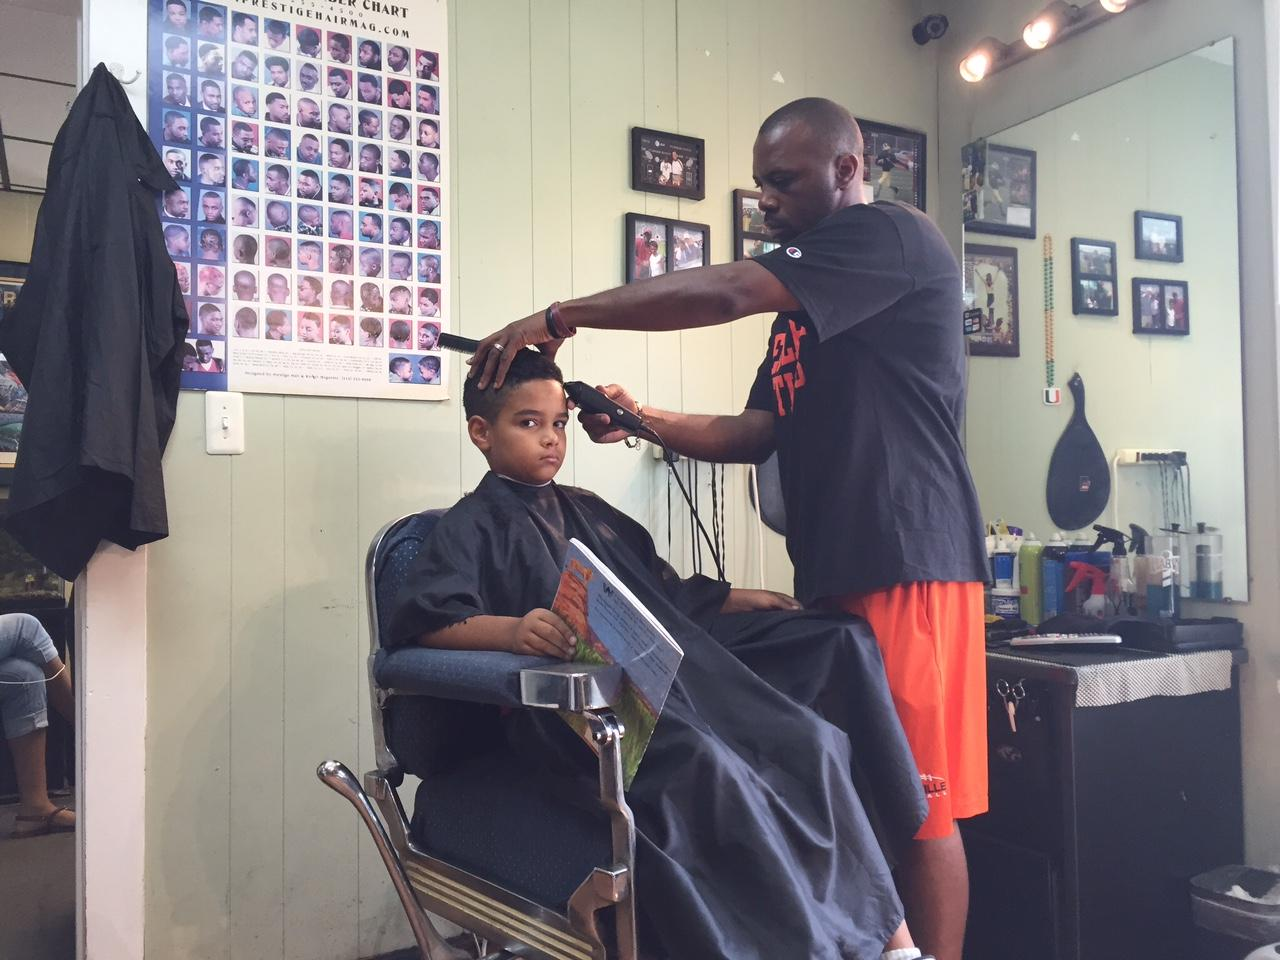 At The Fuller Cut in Ypsilanti, kids who read to their barber get $2 ...